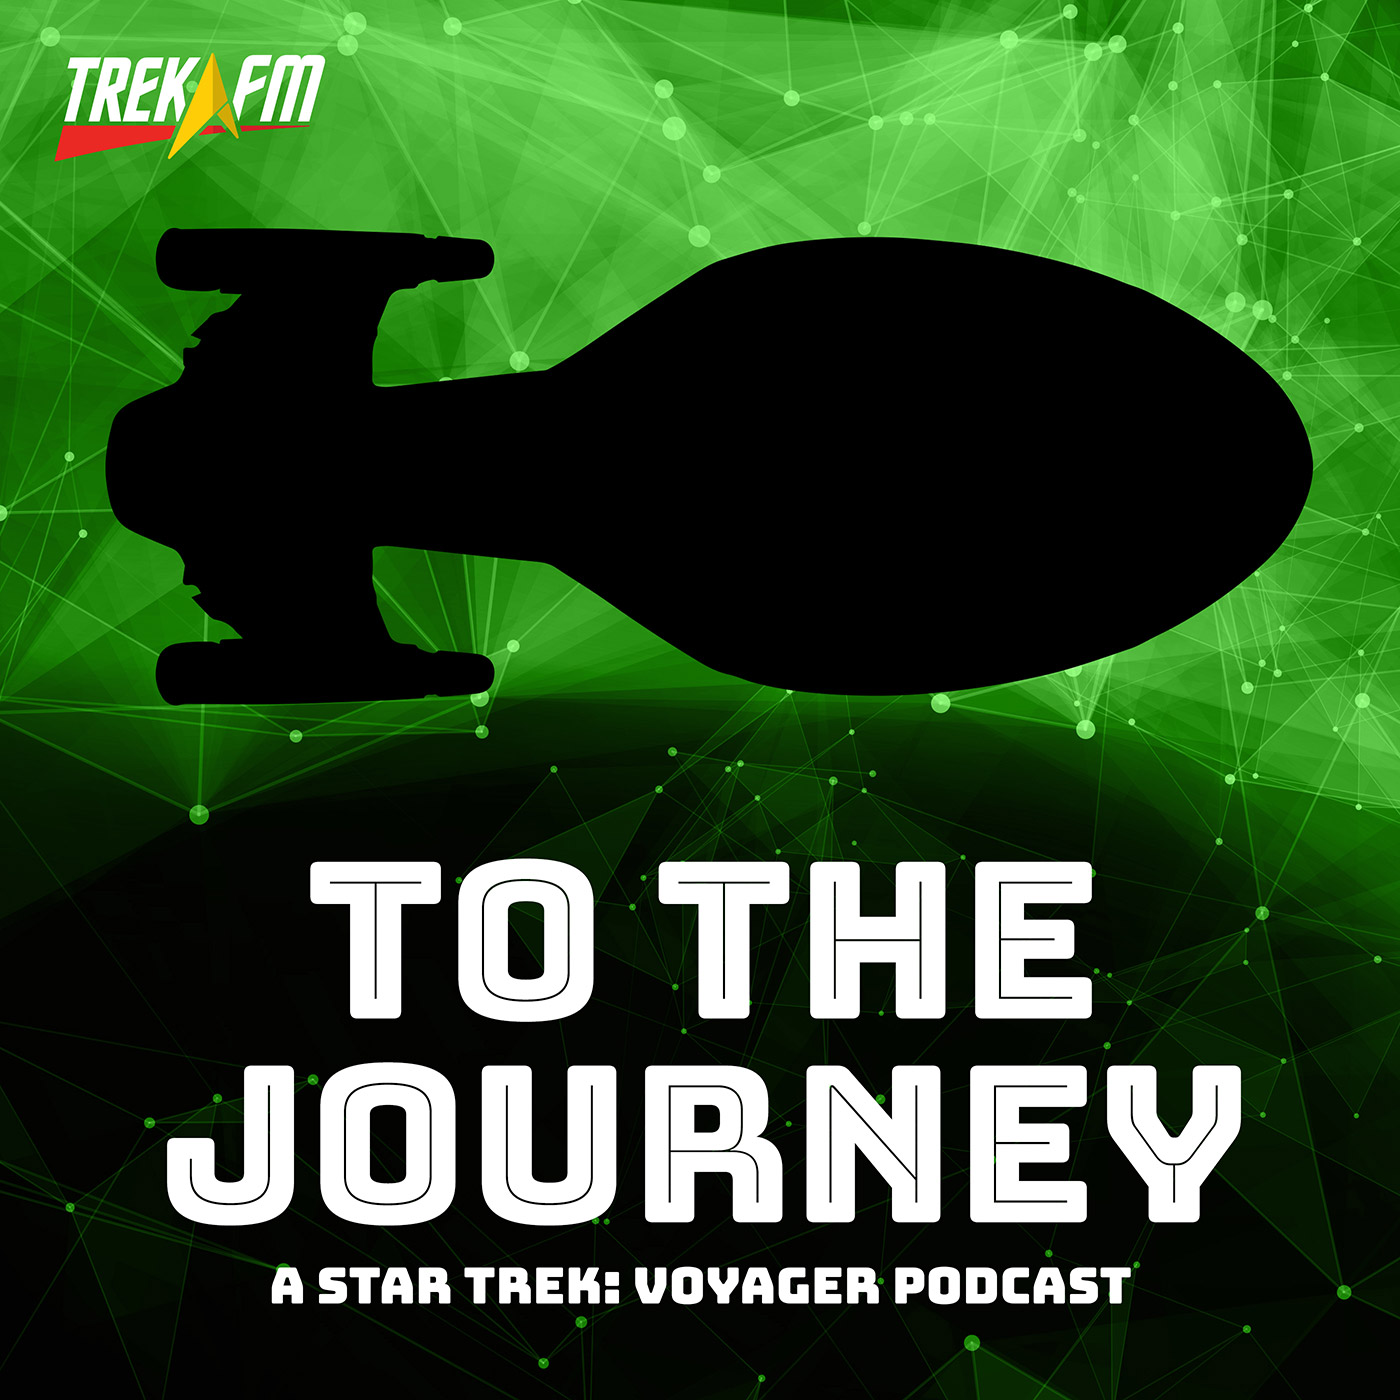 To The Journey: A Star Trek Voyager Podcast show art